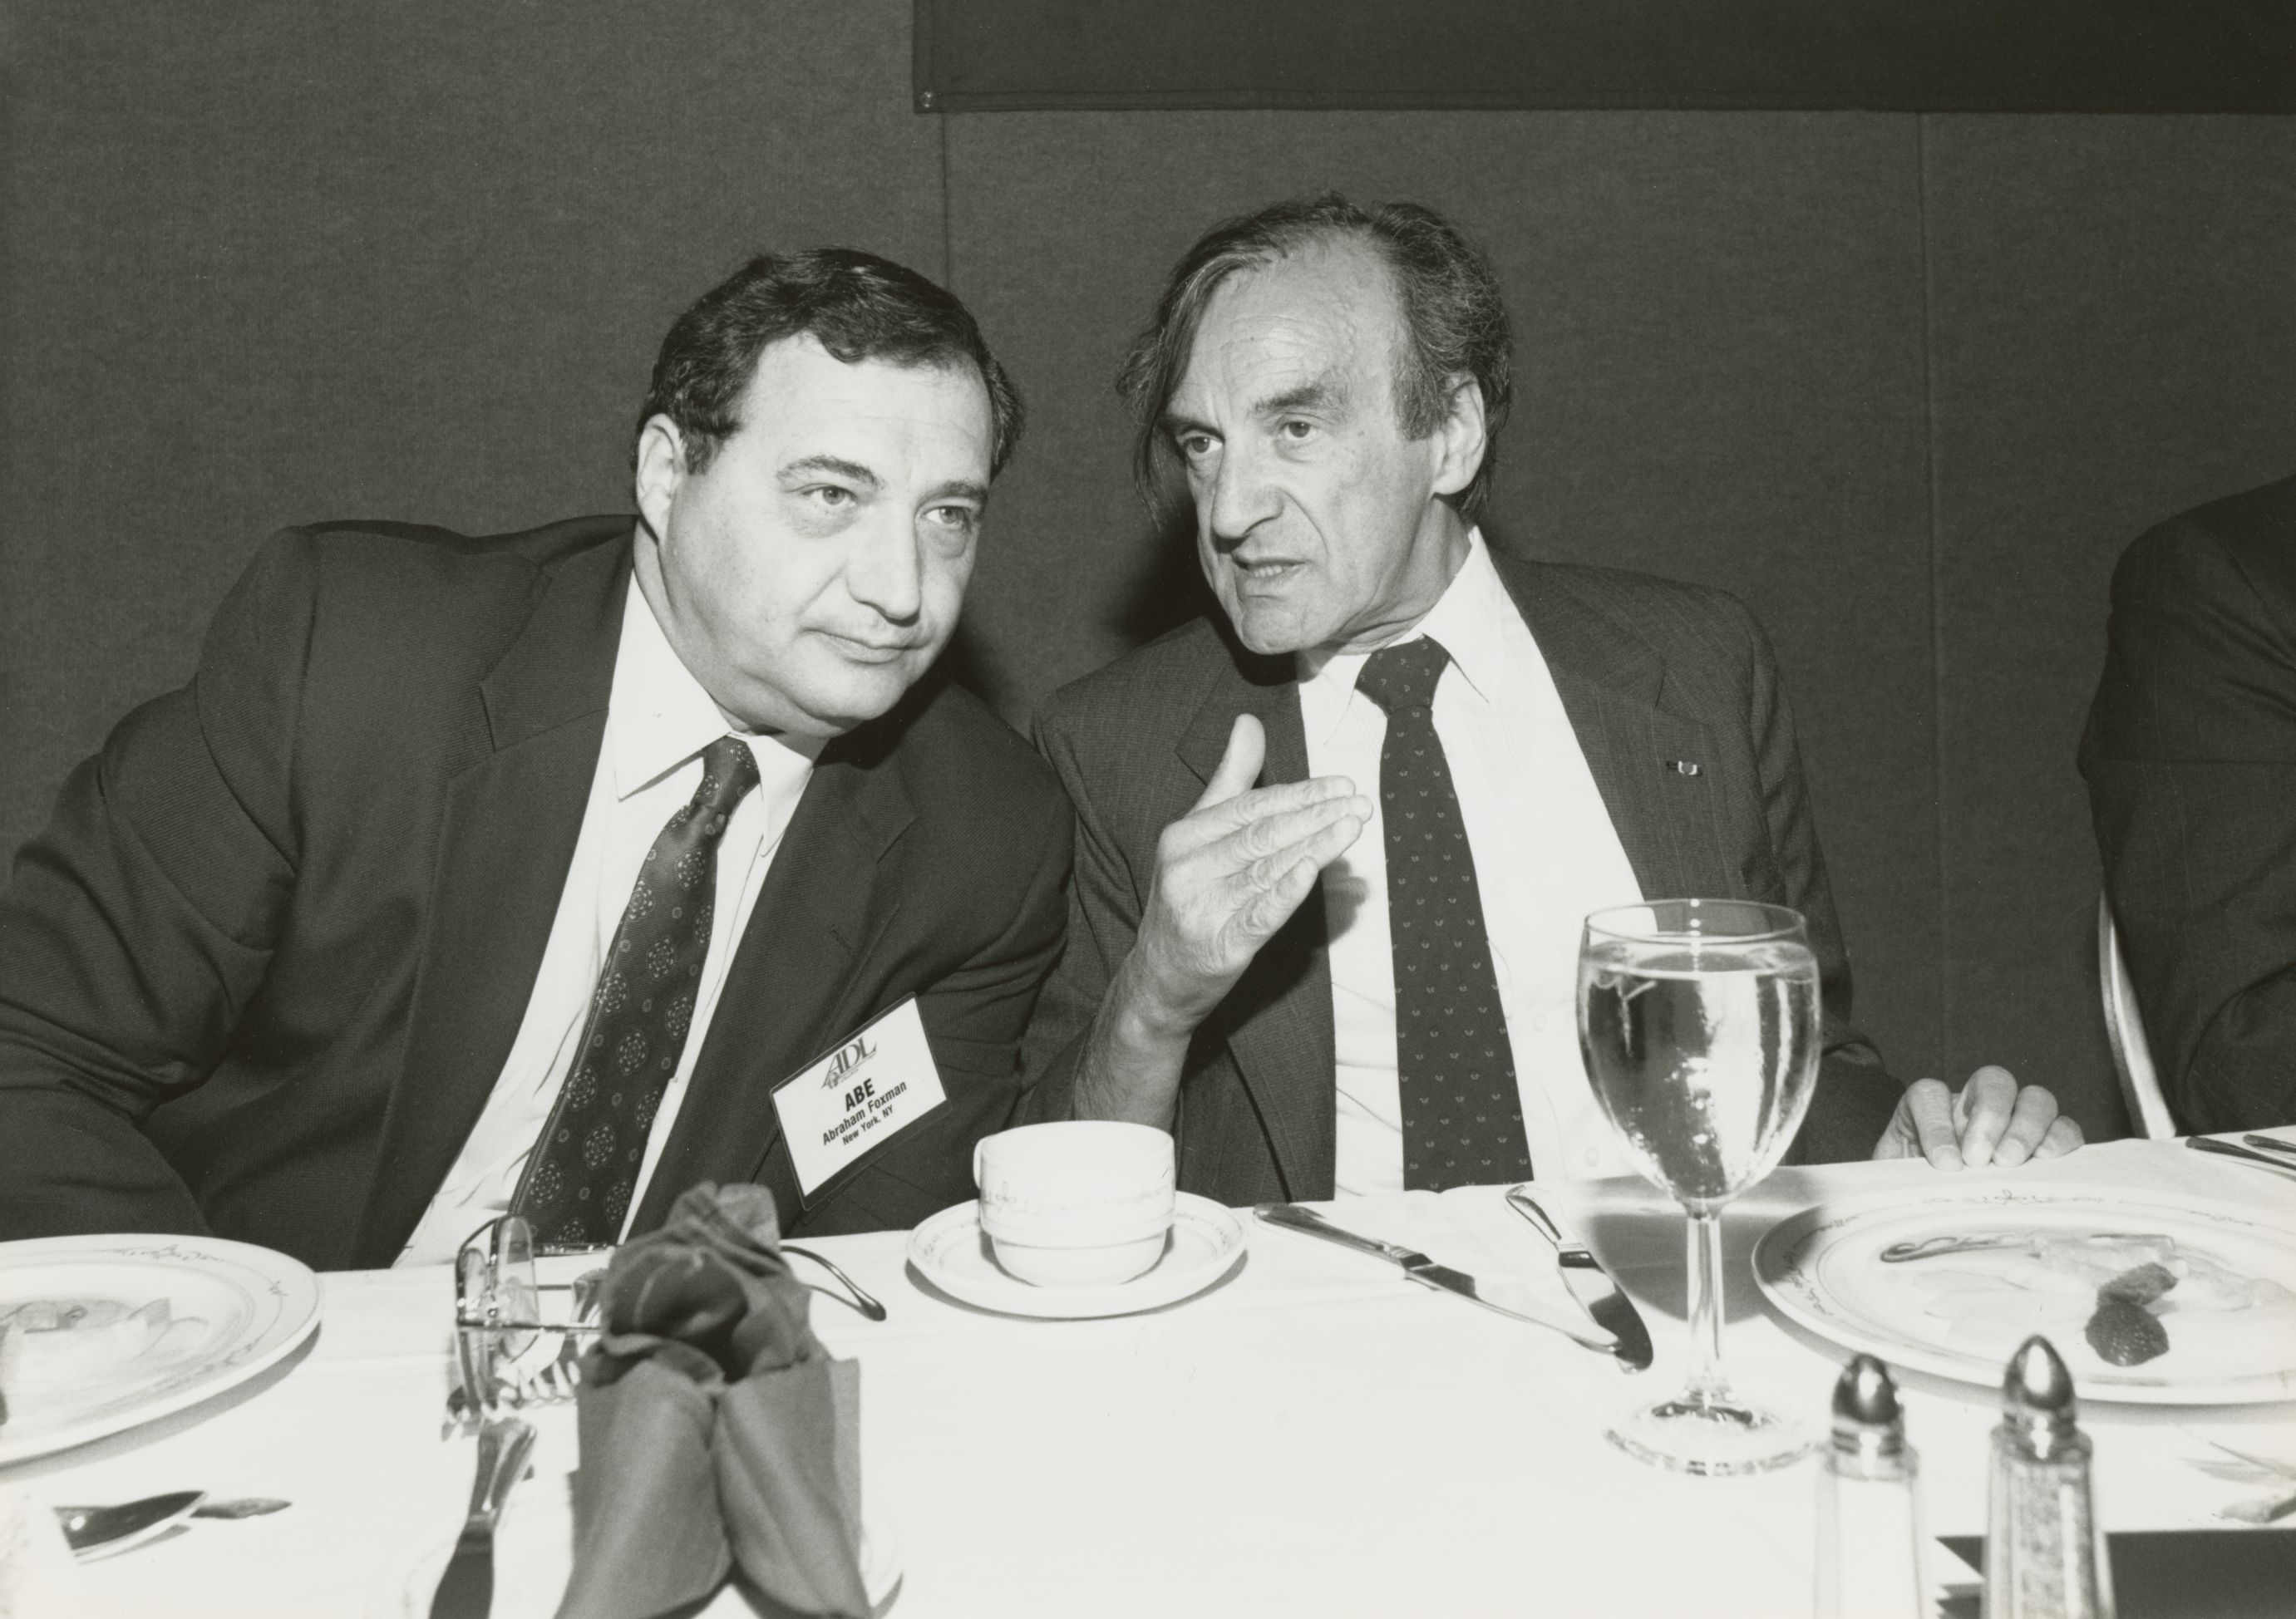 Abe Foxman of ADL with Elie Wiesel